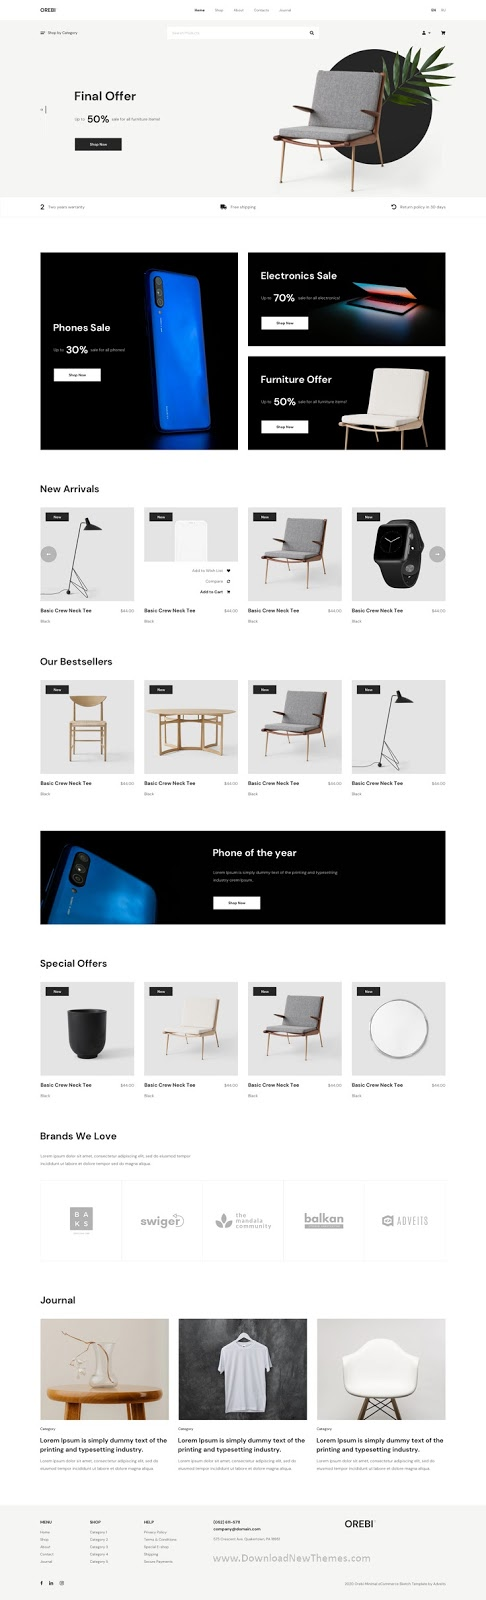 Download Minimal eCommerce Adobe XD Template